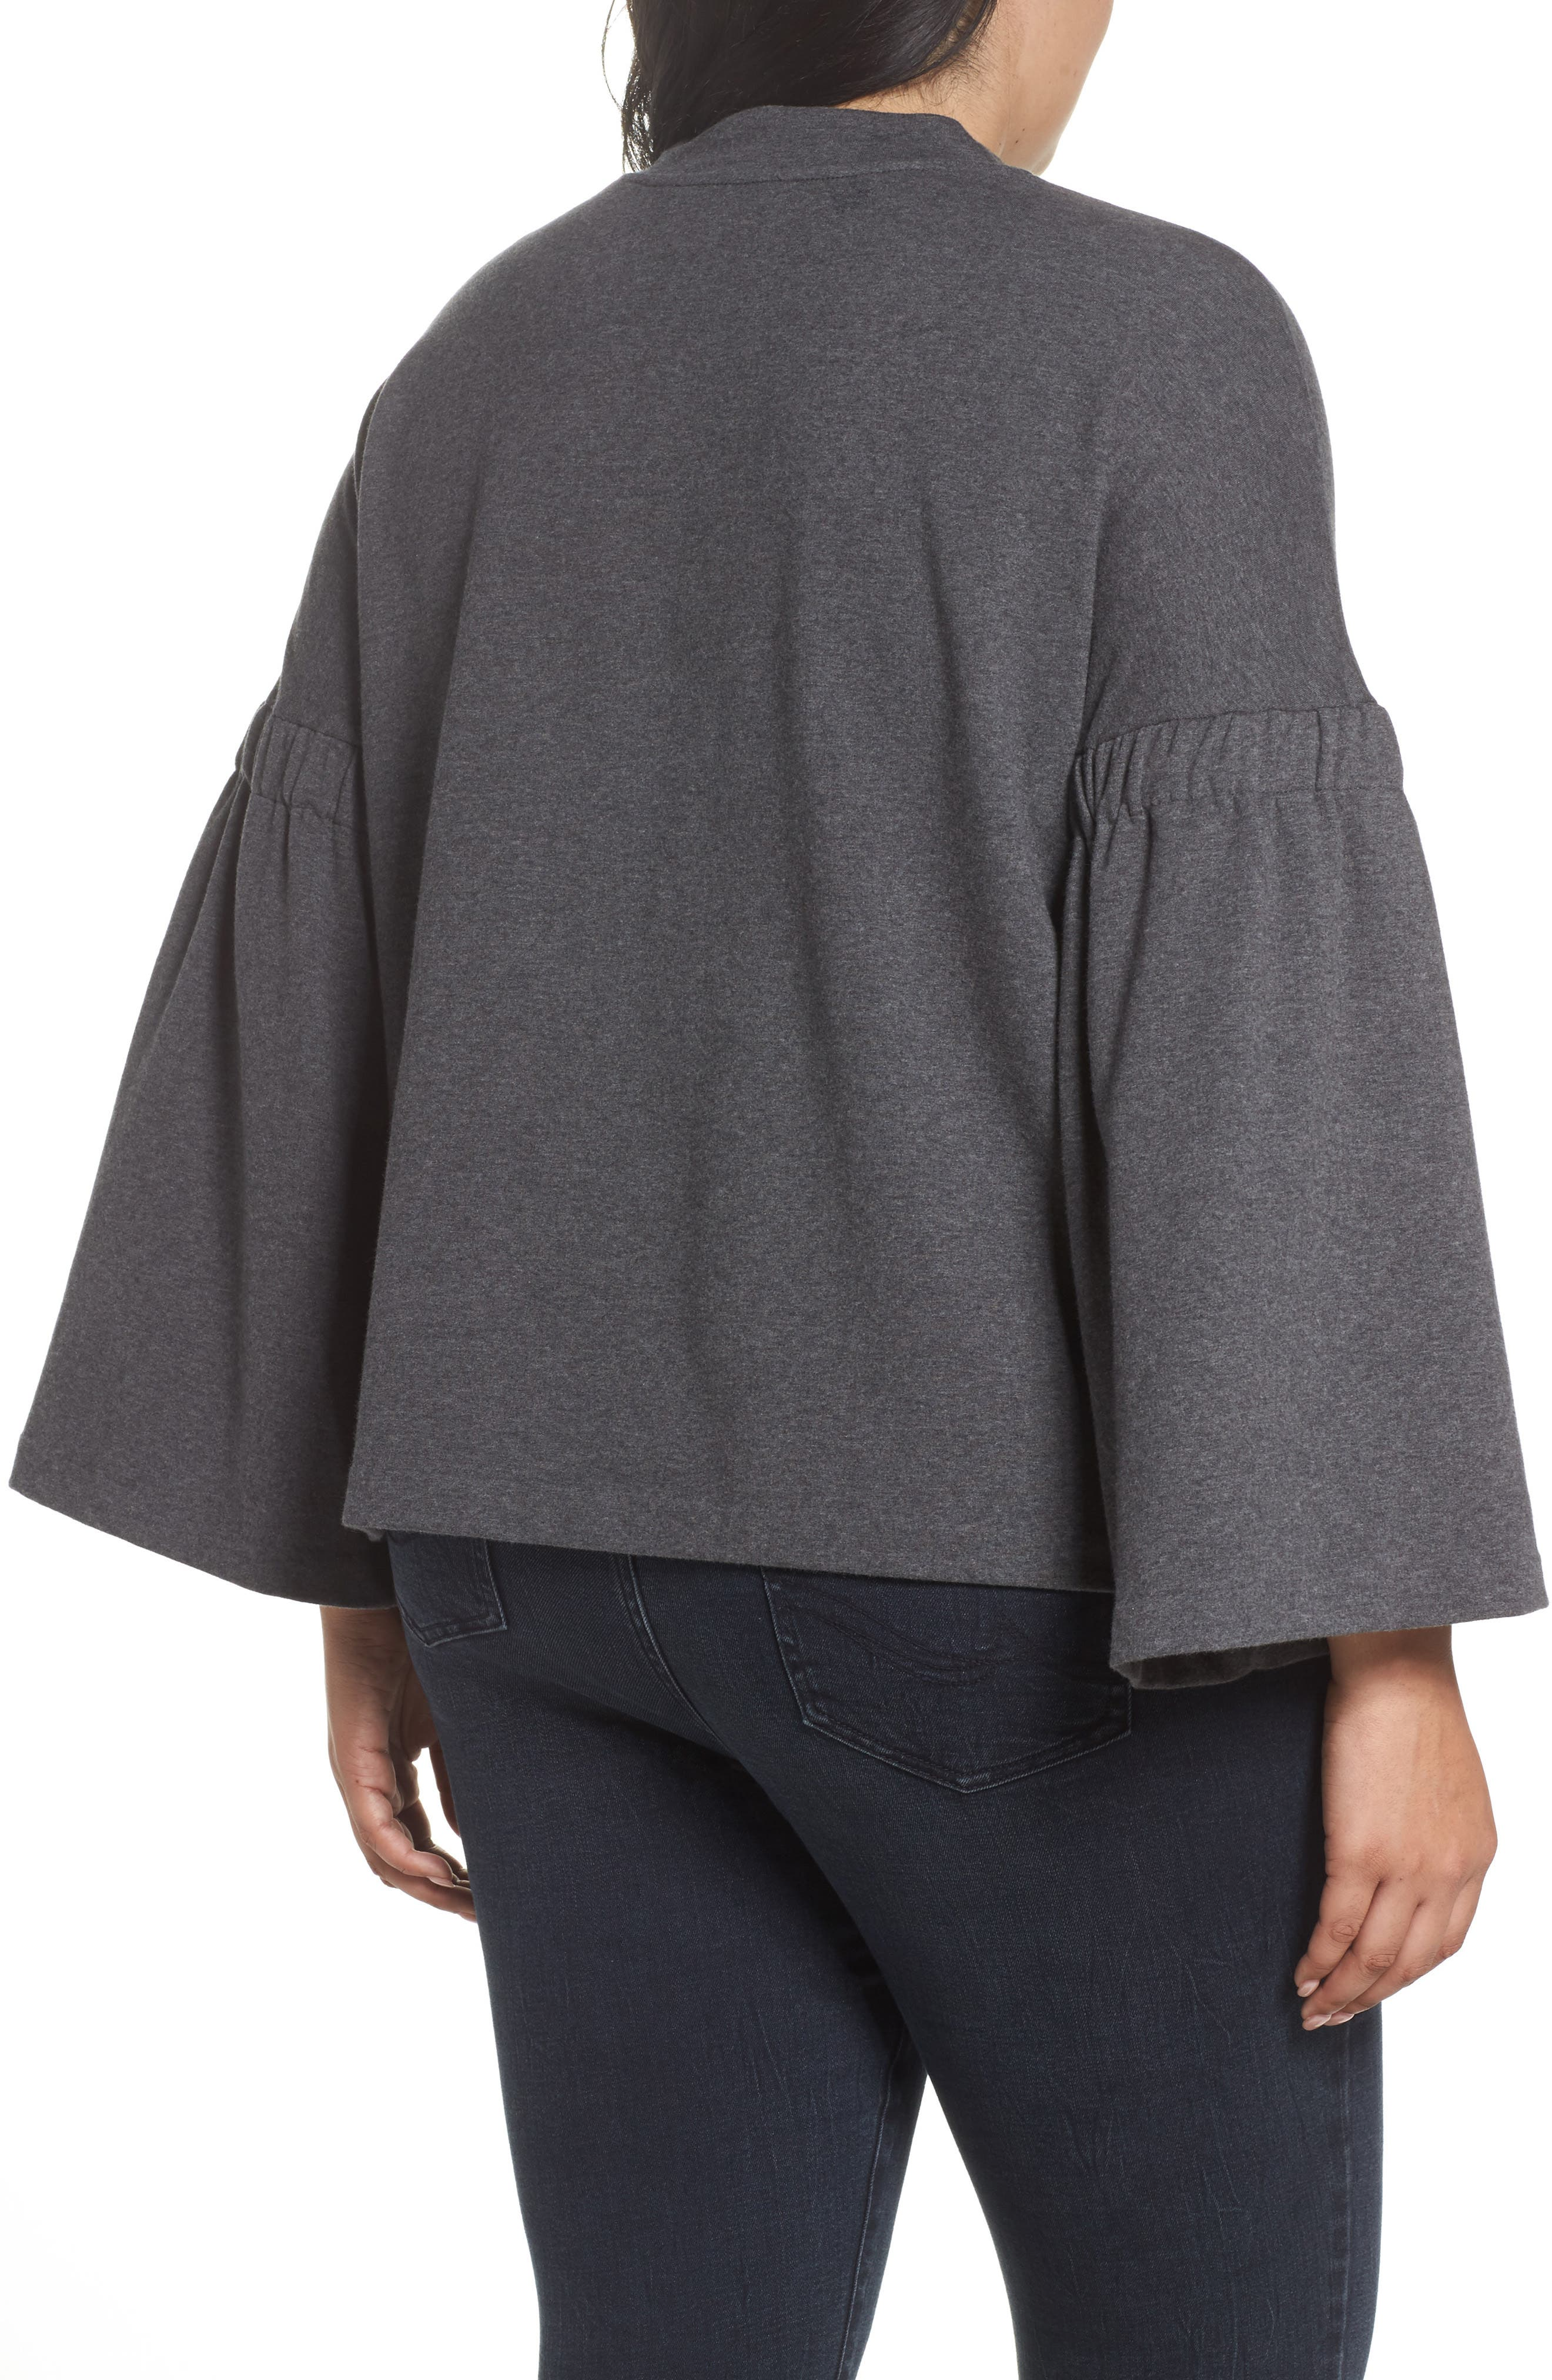 Bell Sleeve Top,                             Alternate thumbnail 2, color,                             Med Heather Grey